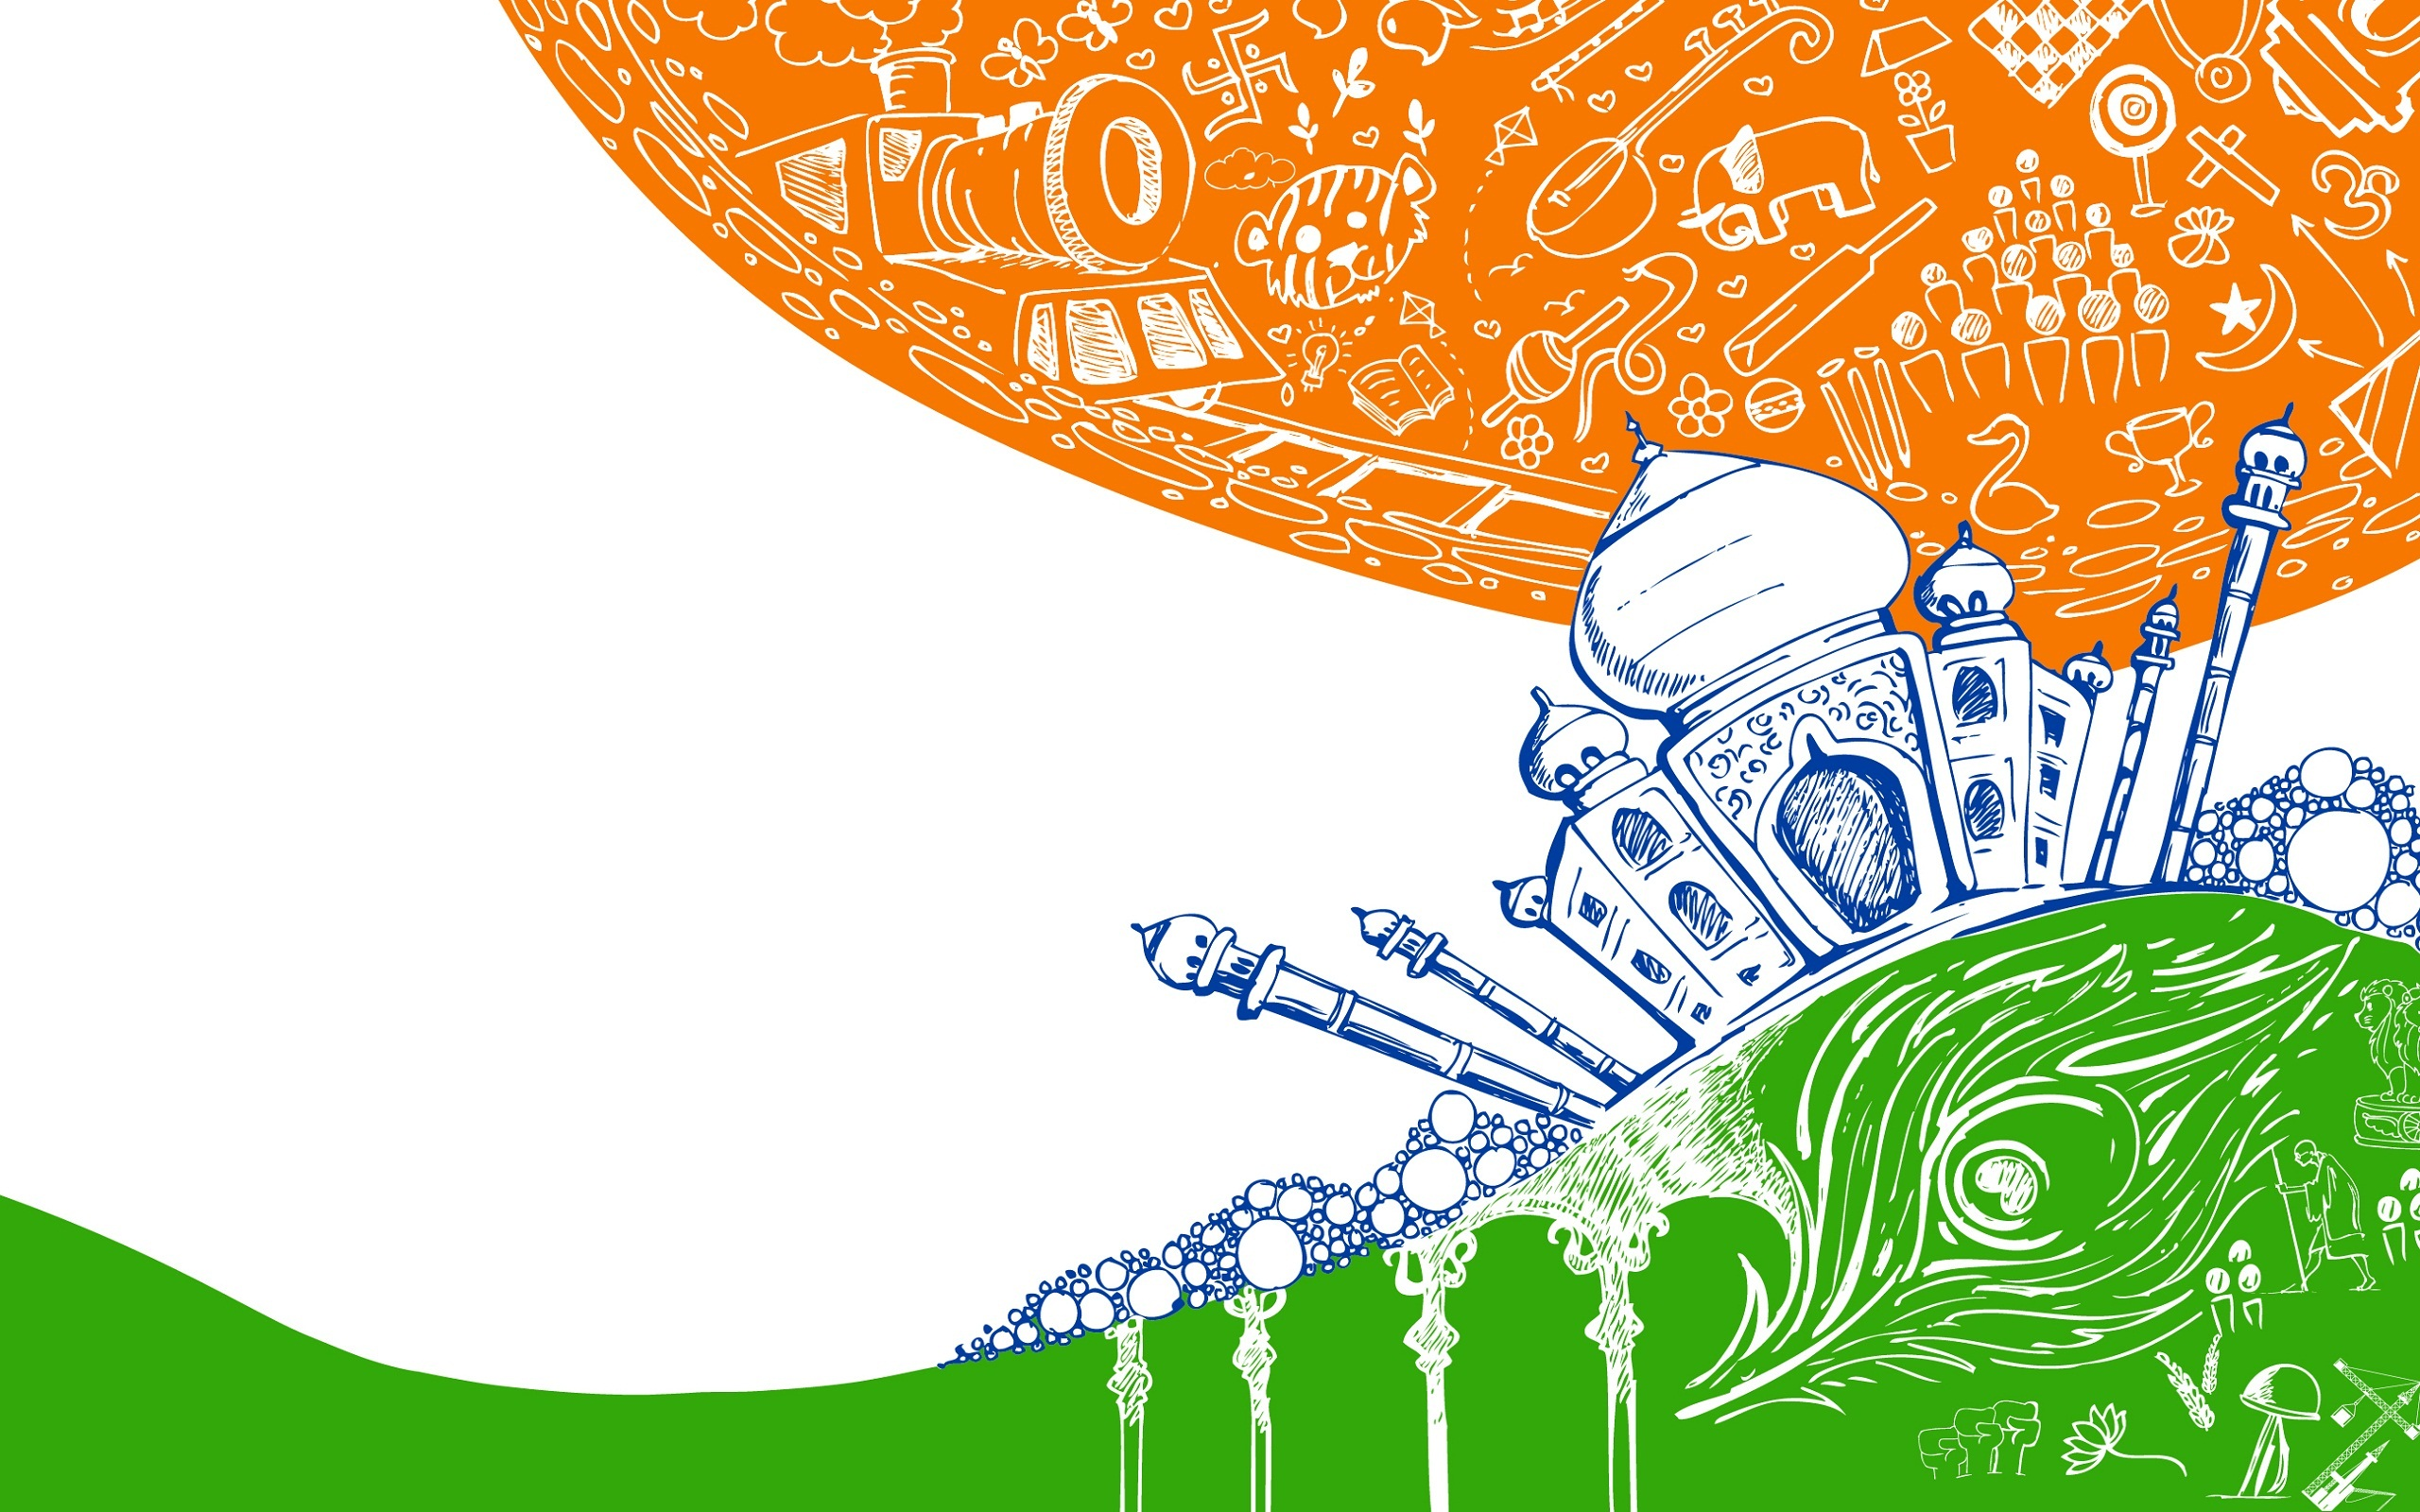 26 January Republic Day 2014 Wallpapers - 2560x1600 - 1122776